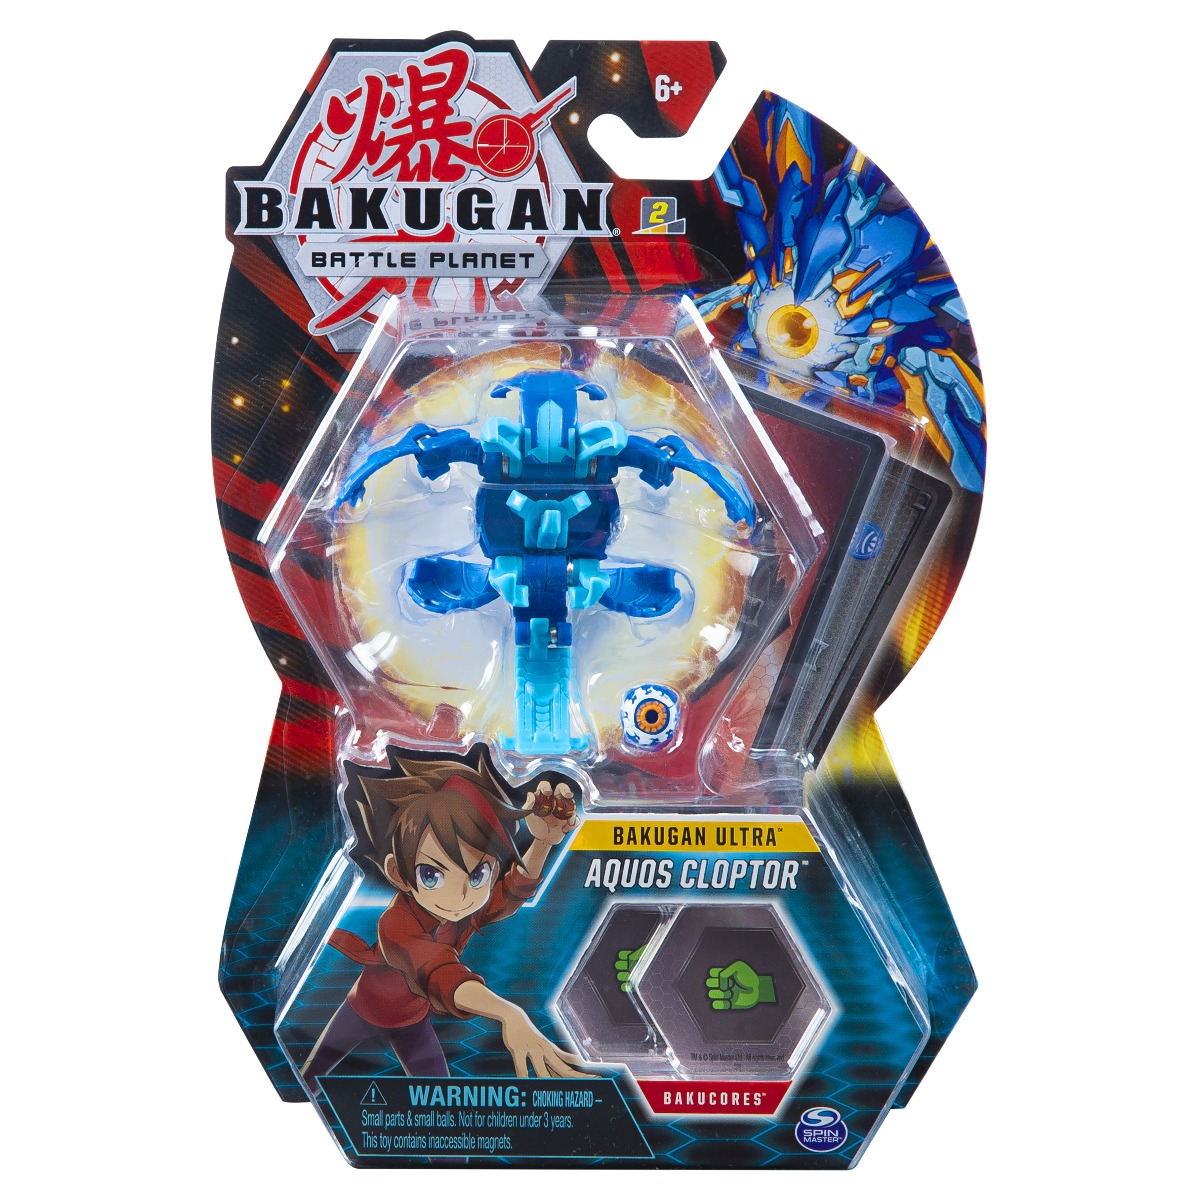 Figurina Bakugan Ultra Battle Planet, Aquos Cloptor, 20118133